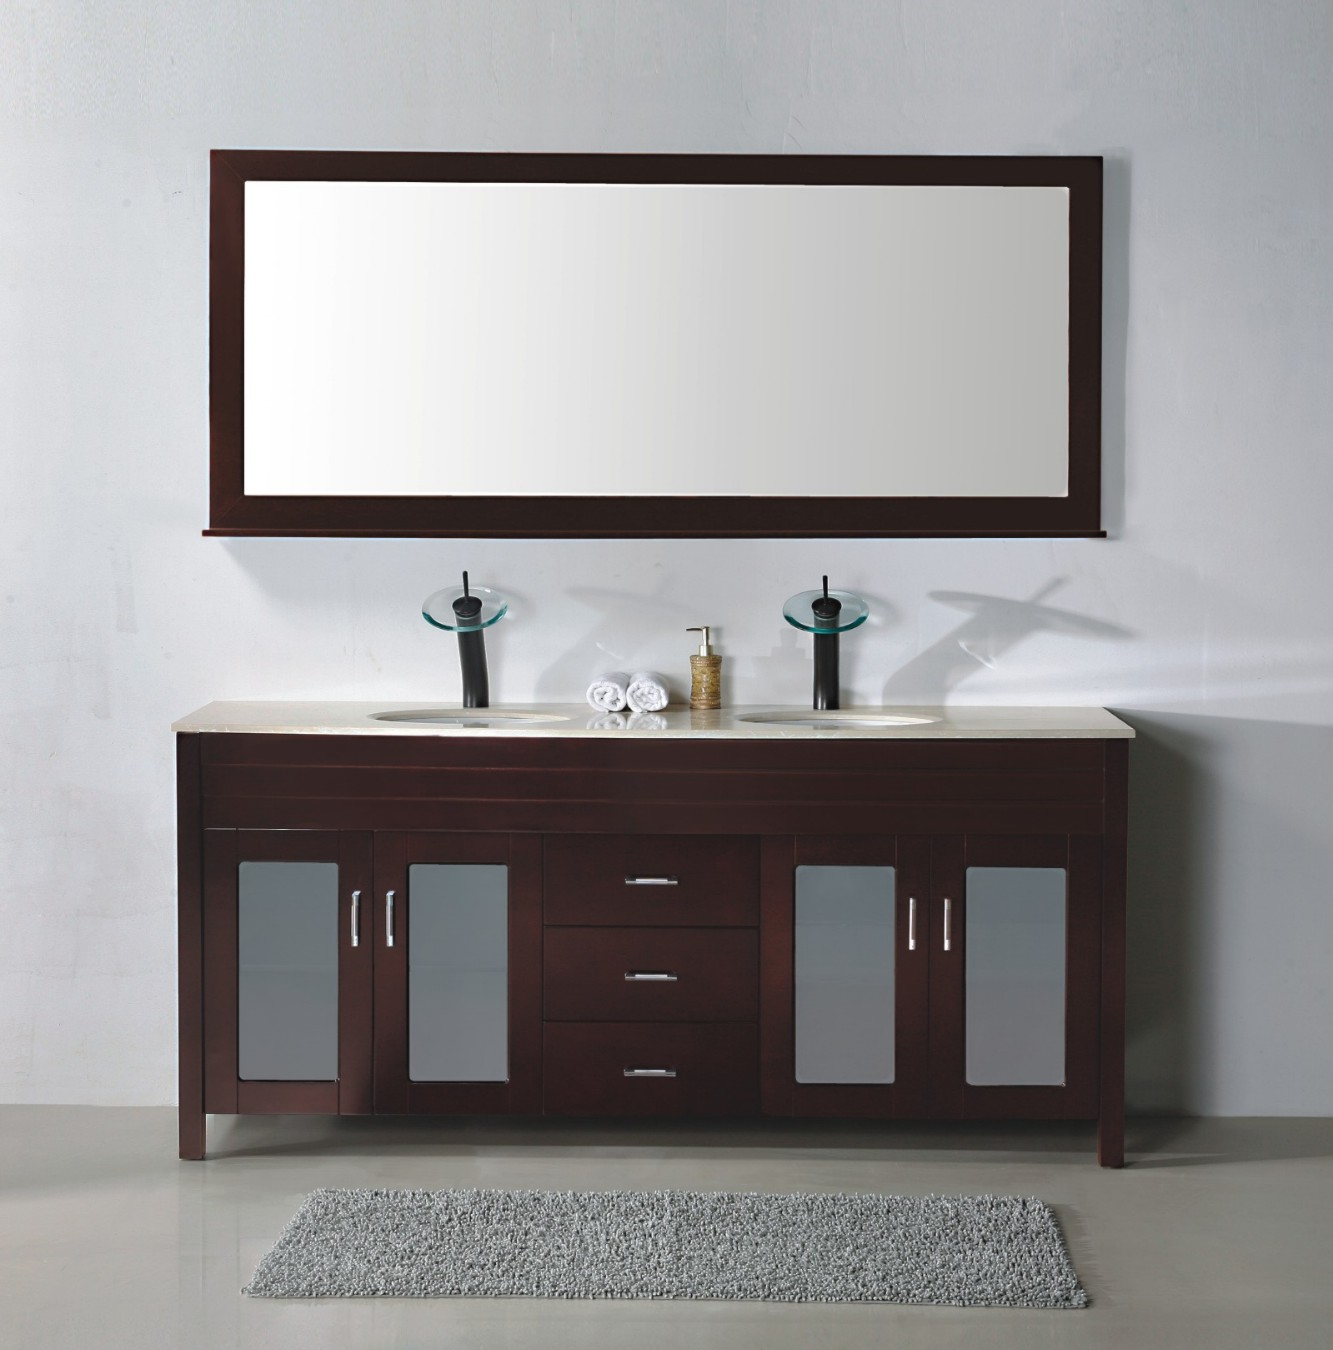 Images of bathroom vanities that will make you fall in for Long black wall mirror